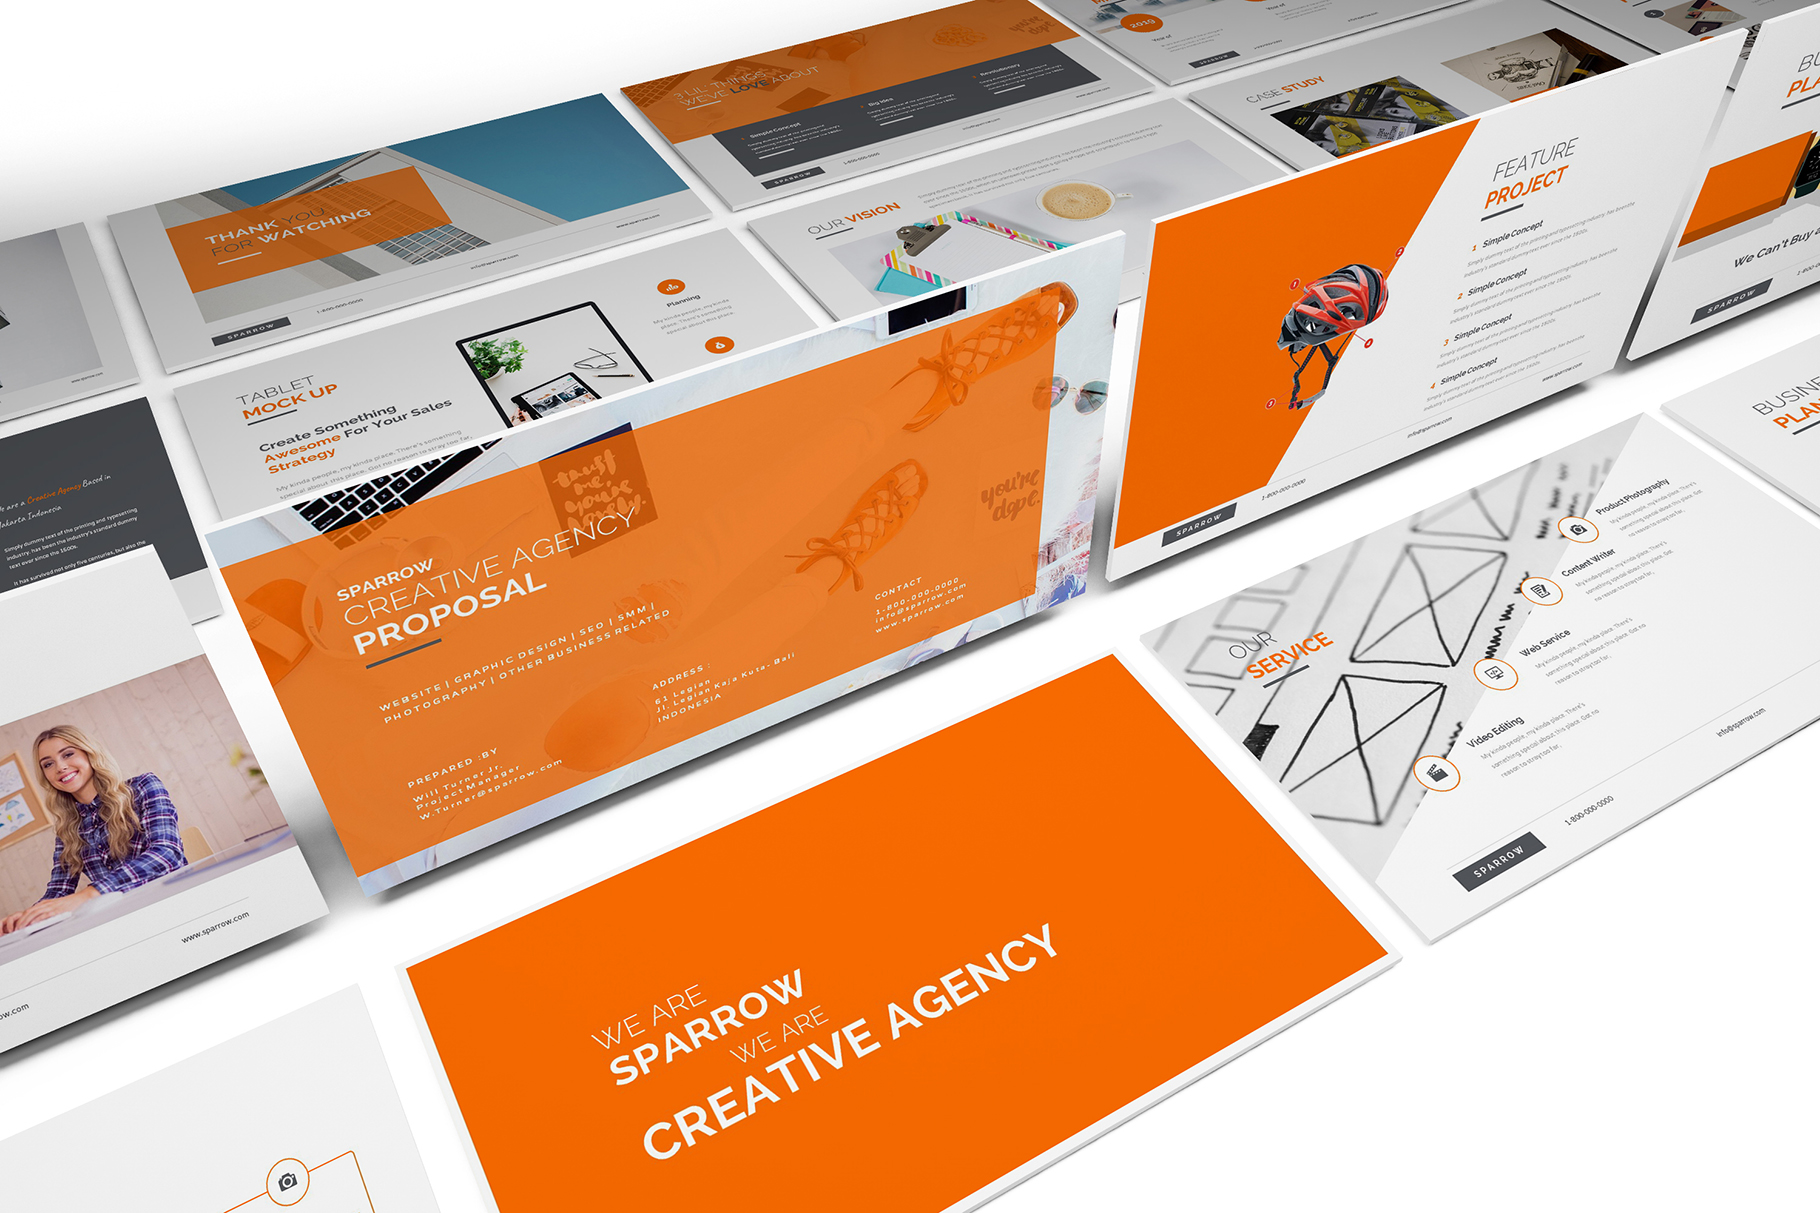 Sparrow - Creative Agency Keynote example image 1